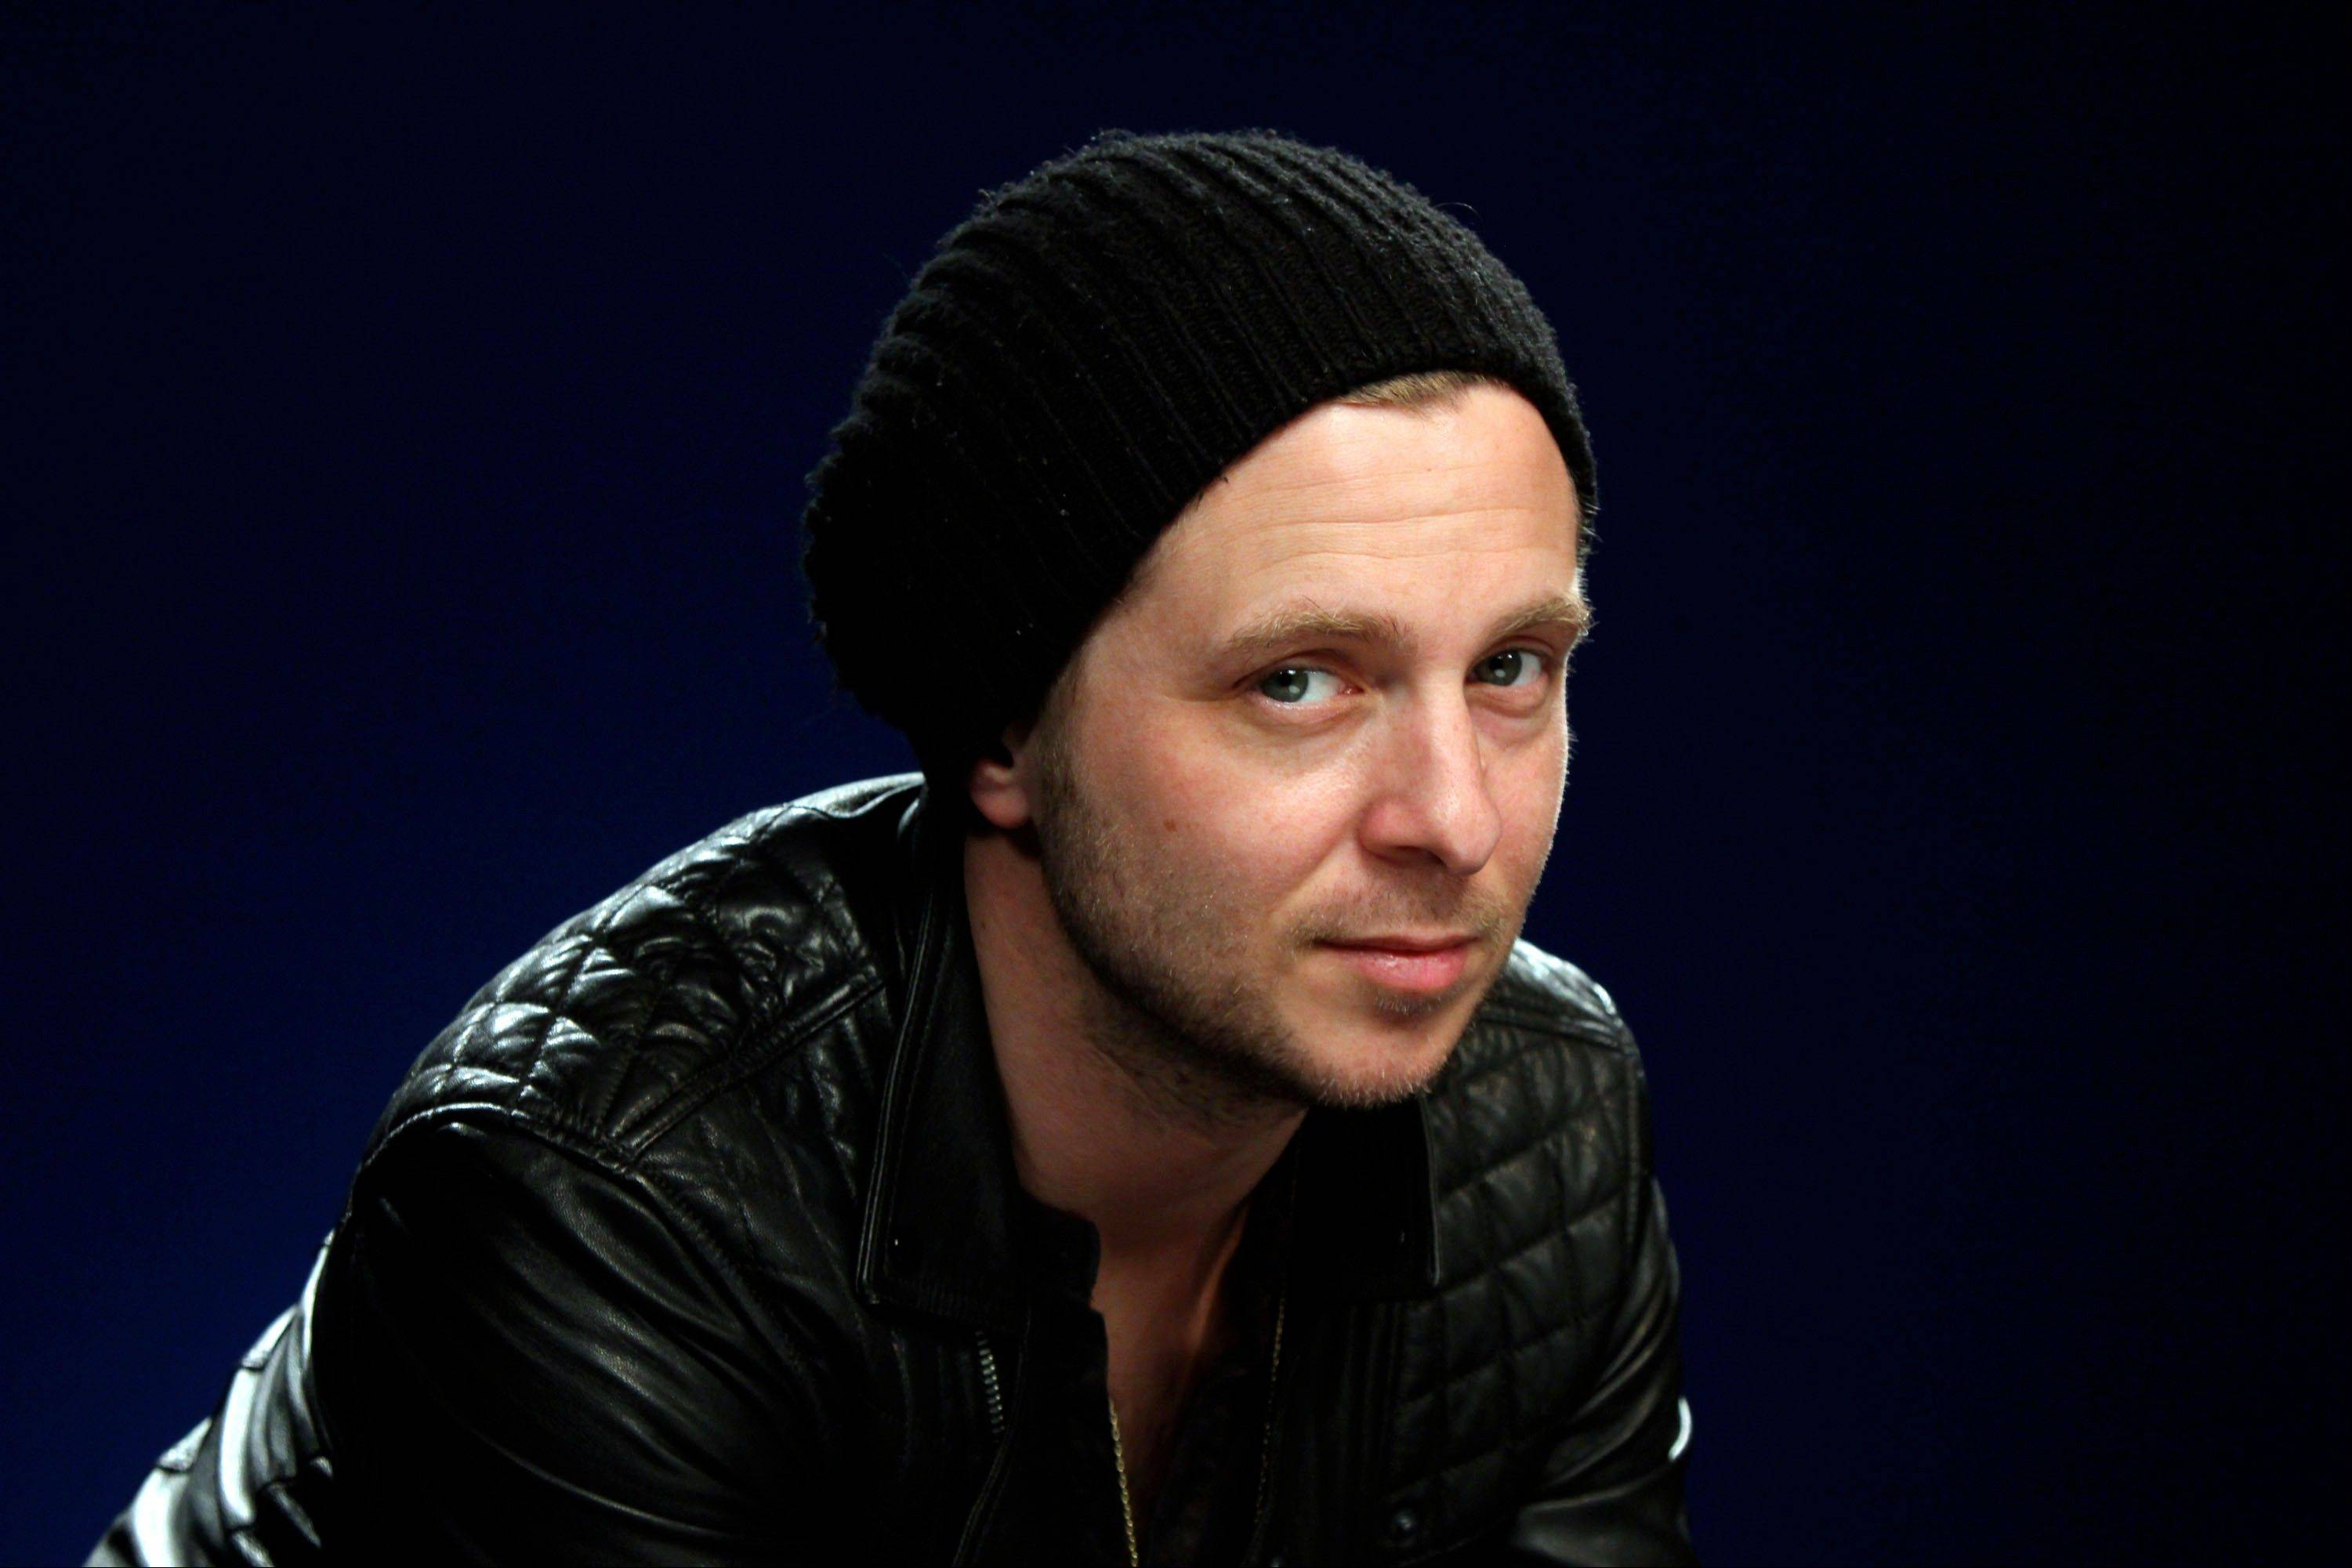 OneRepublic frontman Ryan Tedder, who produced Beyonce�s single �XO, said he learned about her surprise release not long before it went public.